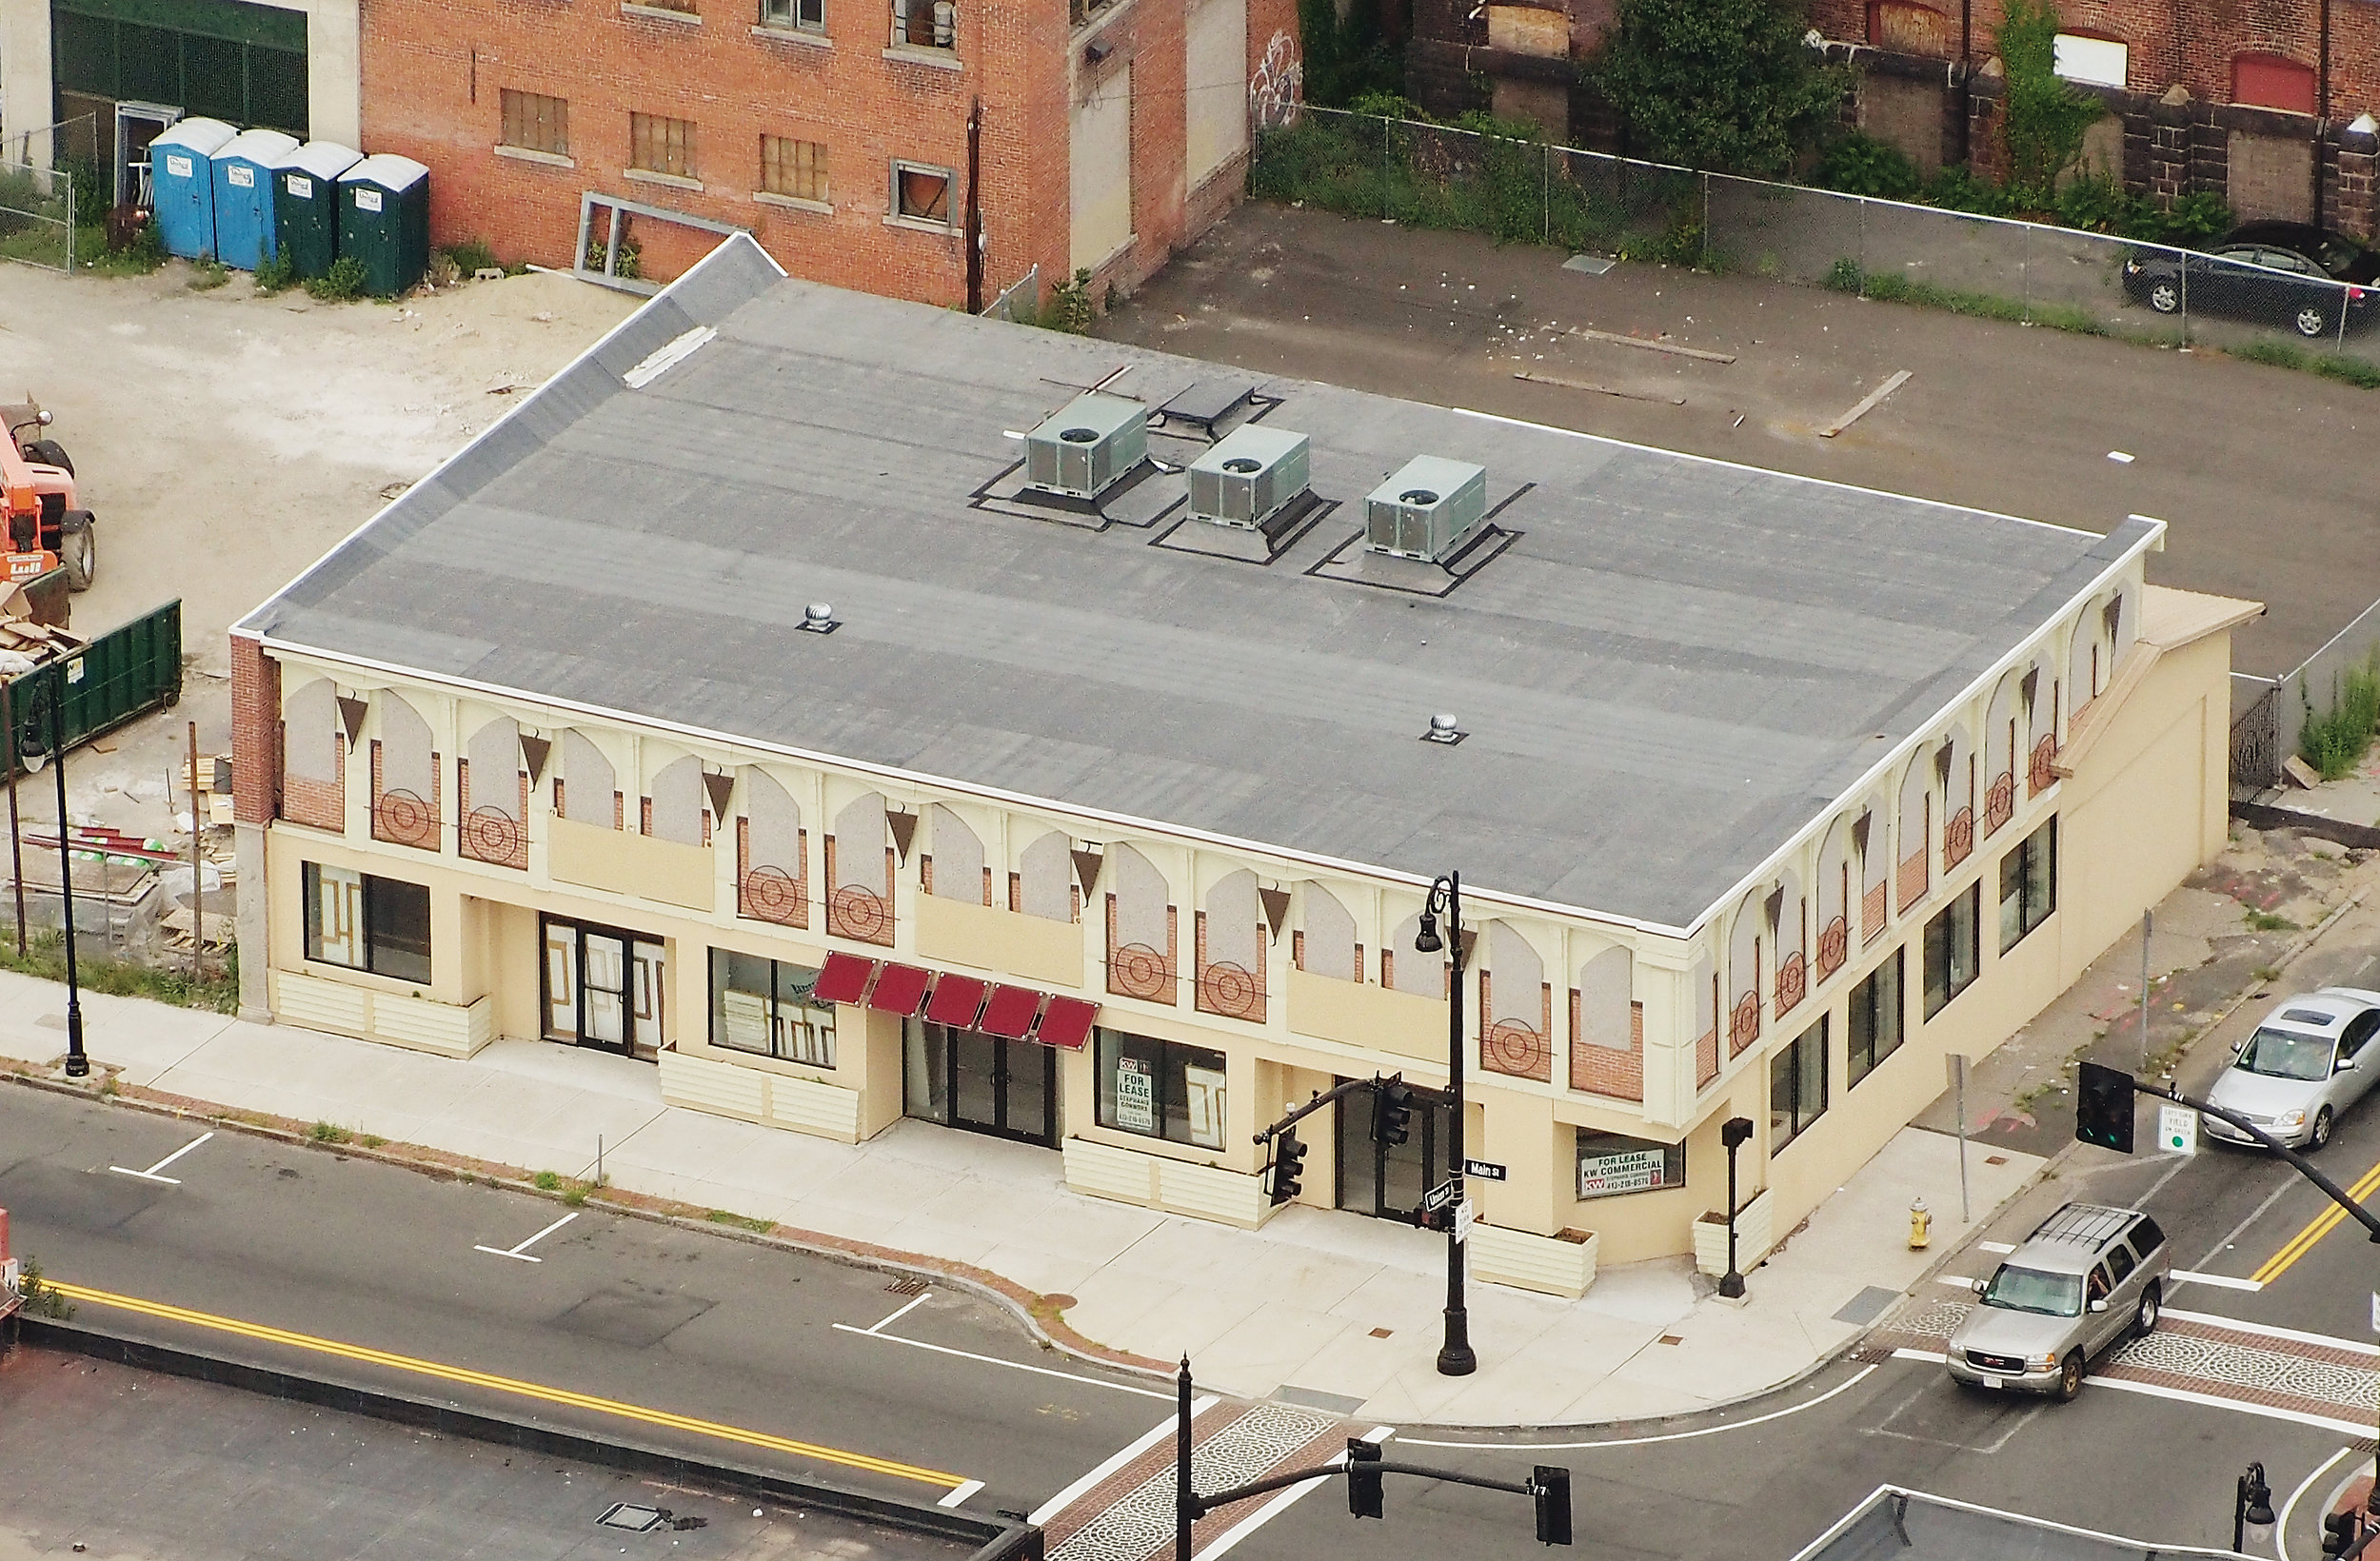 the business owner was able to replace his old structure with a new building.